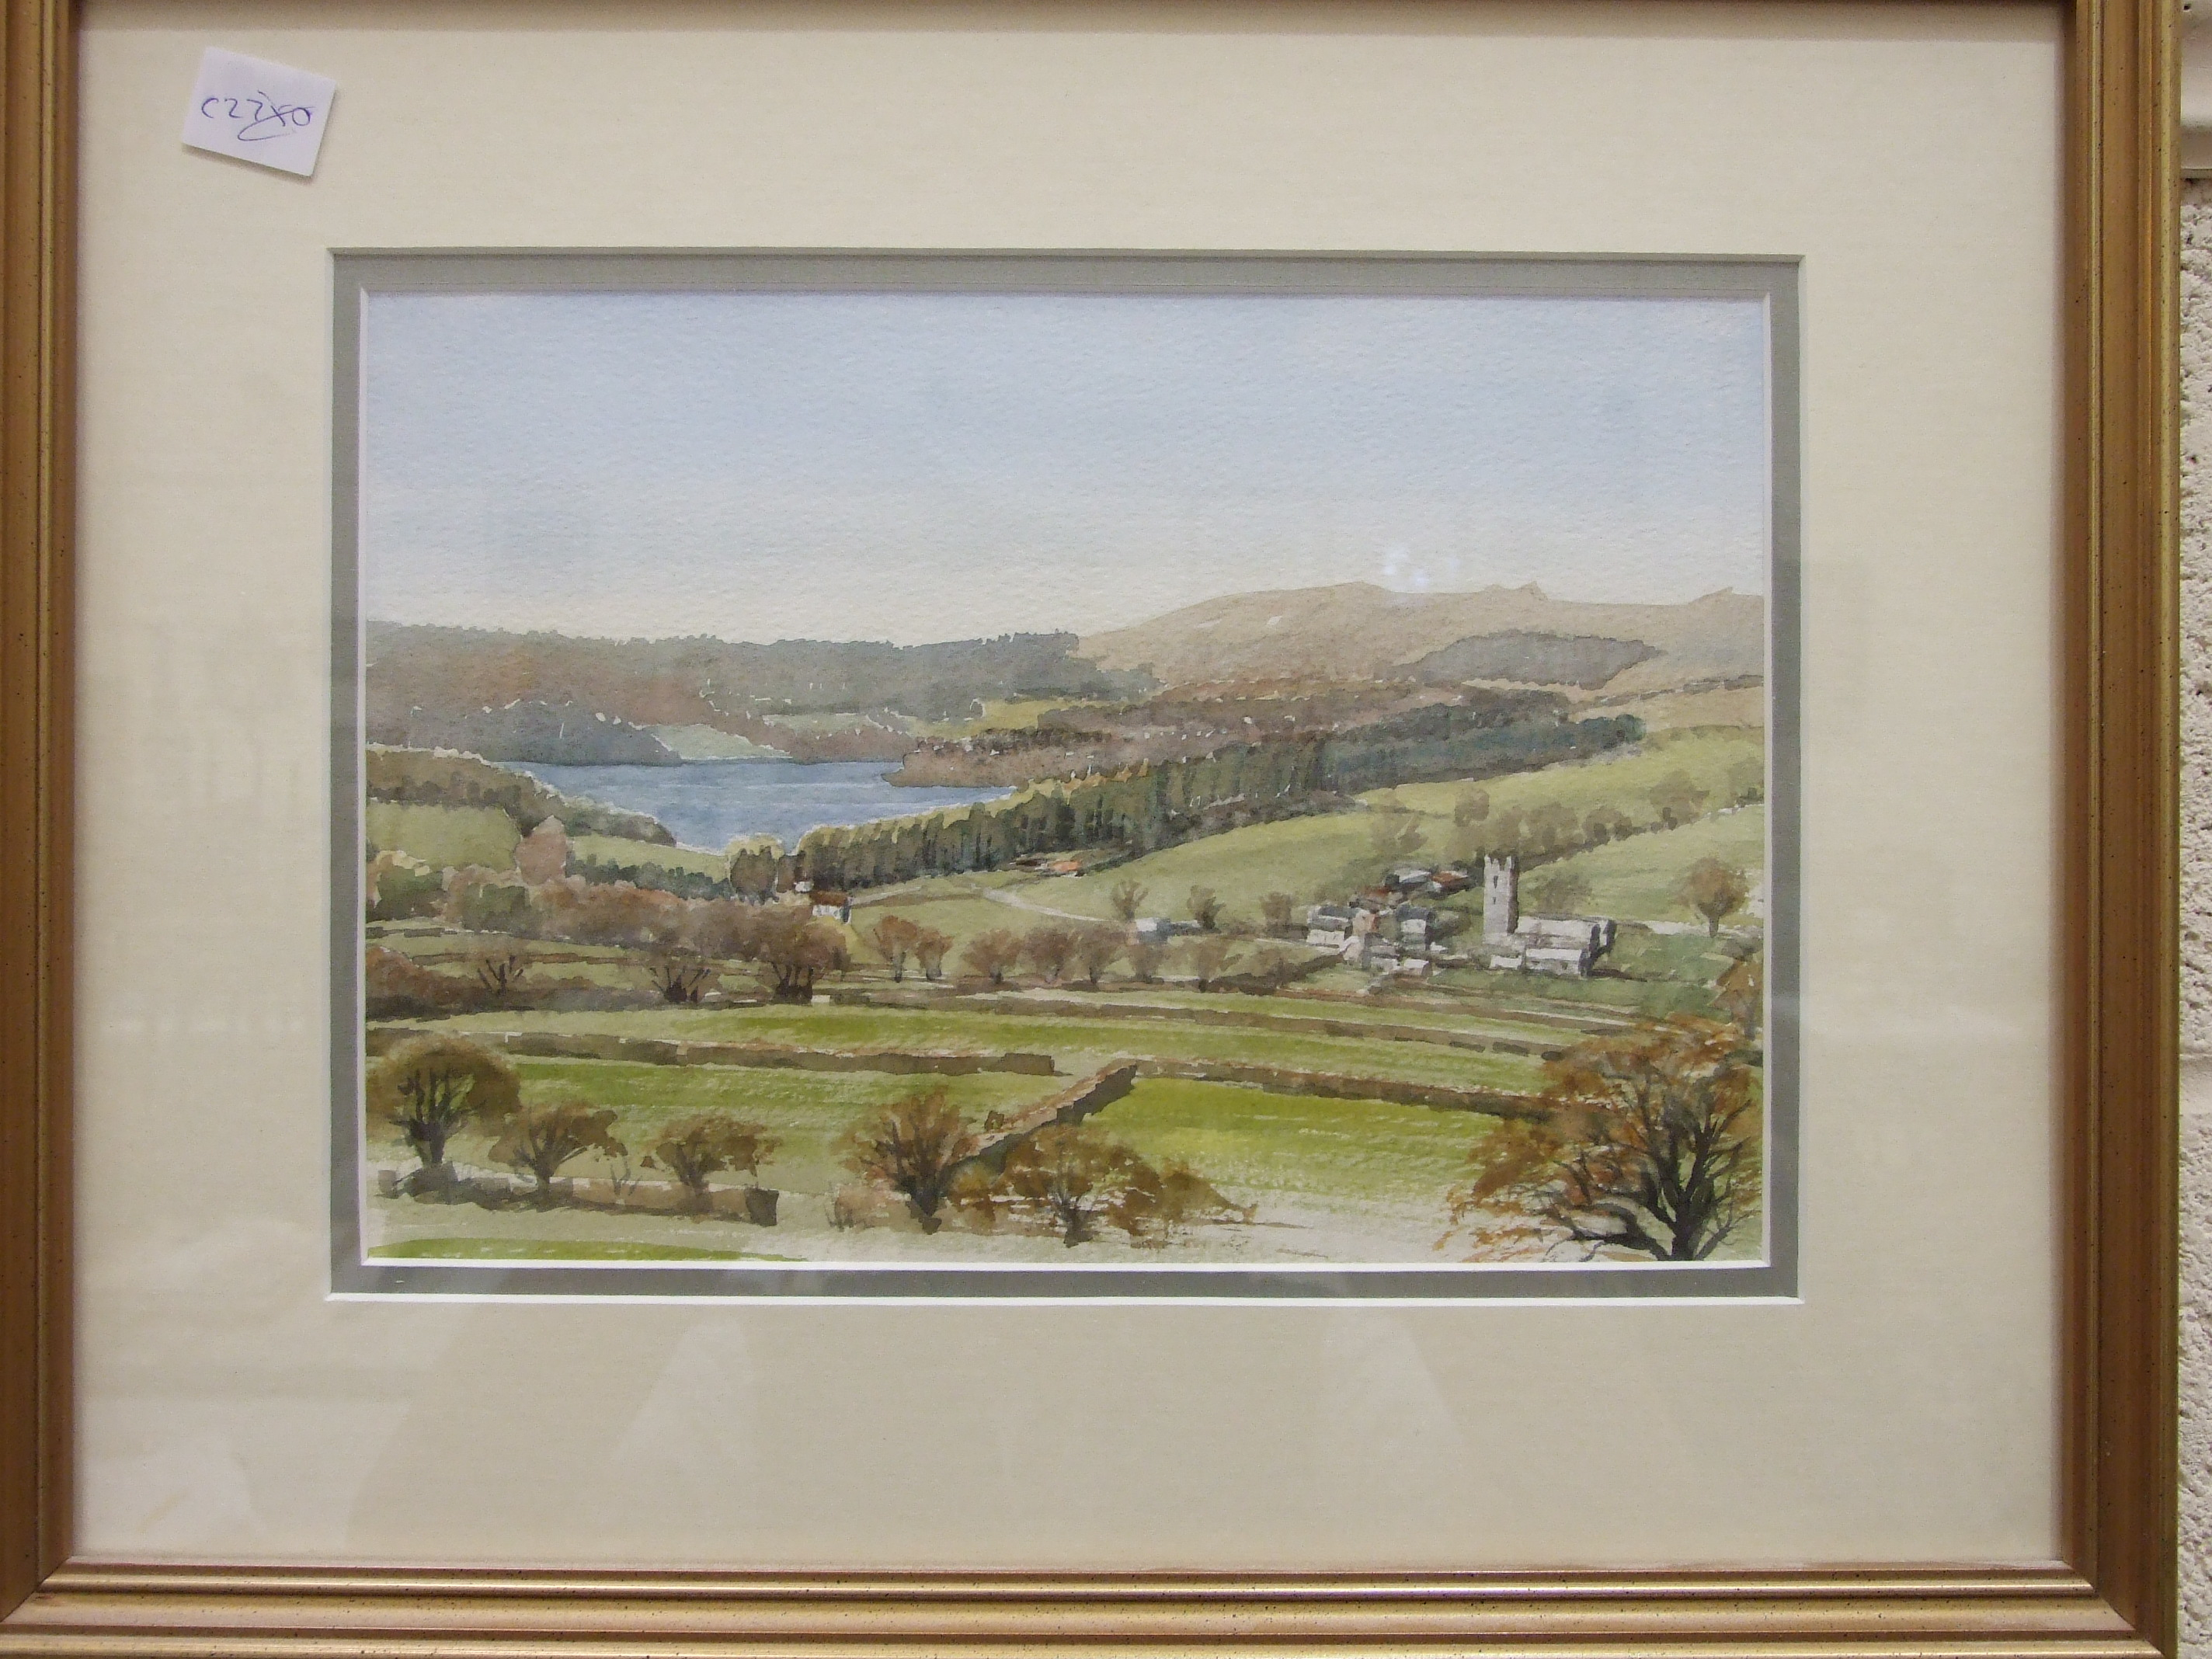 B Morrish, 'Mist Tor and Burrator Lake', signed watercolour, 18 x 27cm and Sue Mercer 'Sheepstor - Image 2 of 3